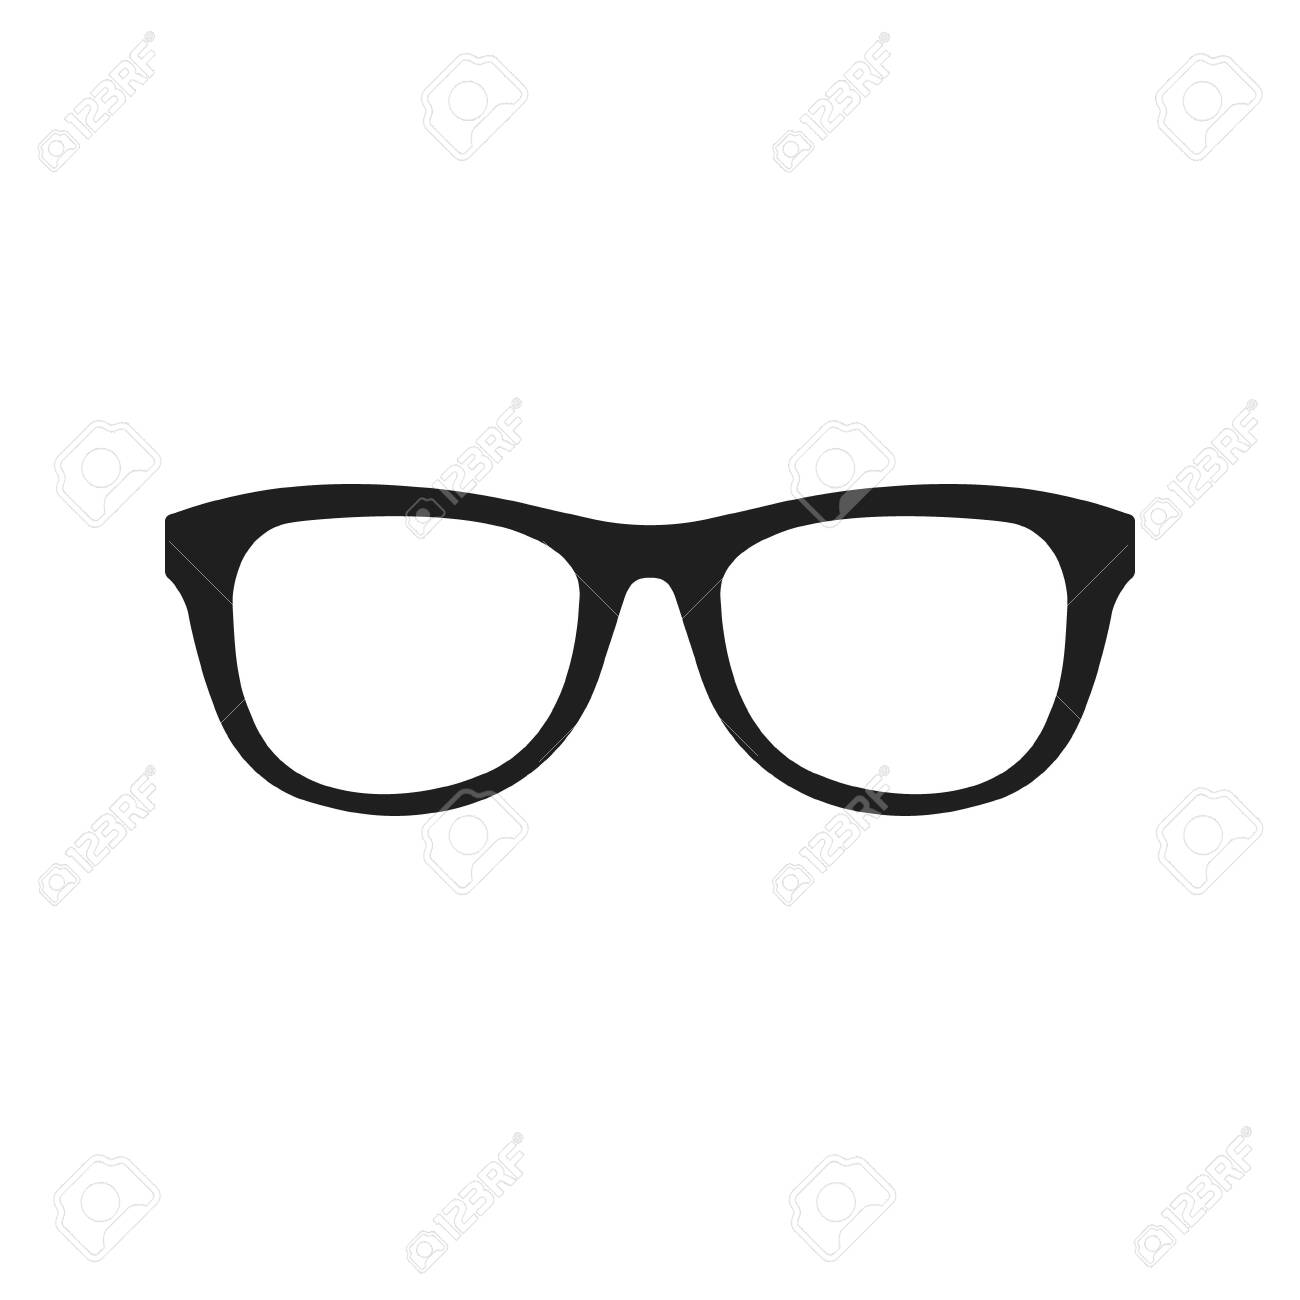 Vector illstration of glasses icon. Flat design. Isolated. - 139231615